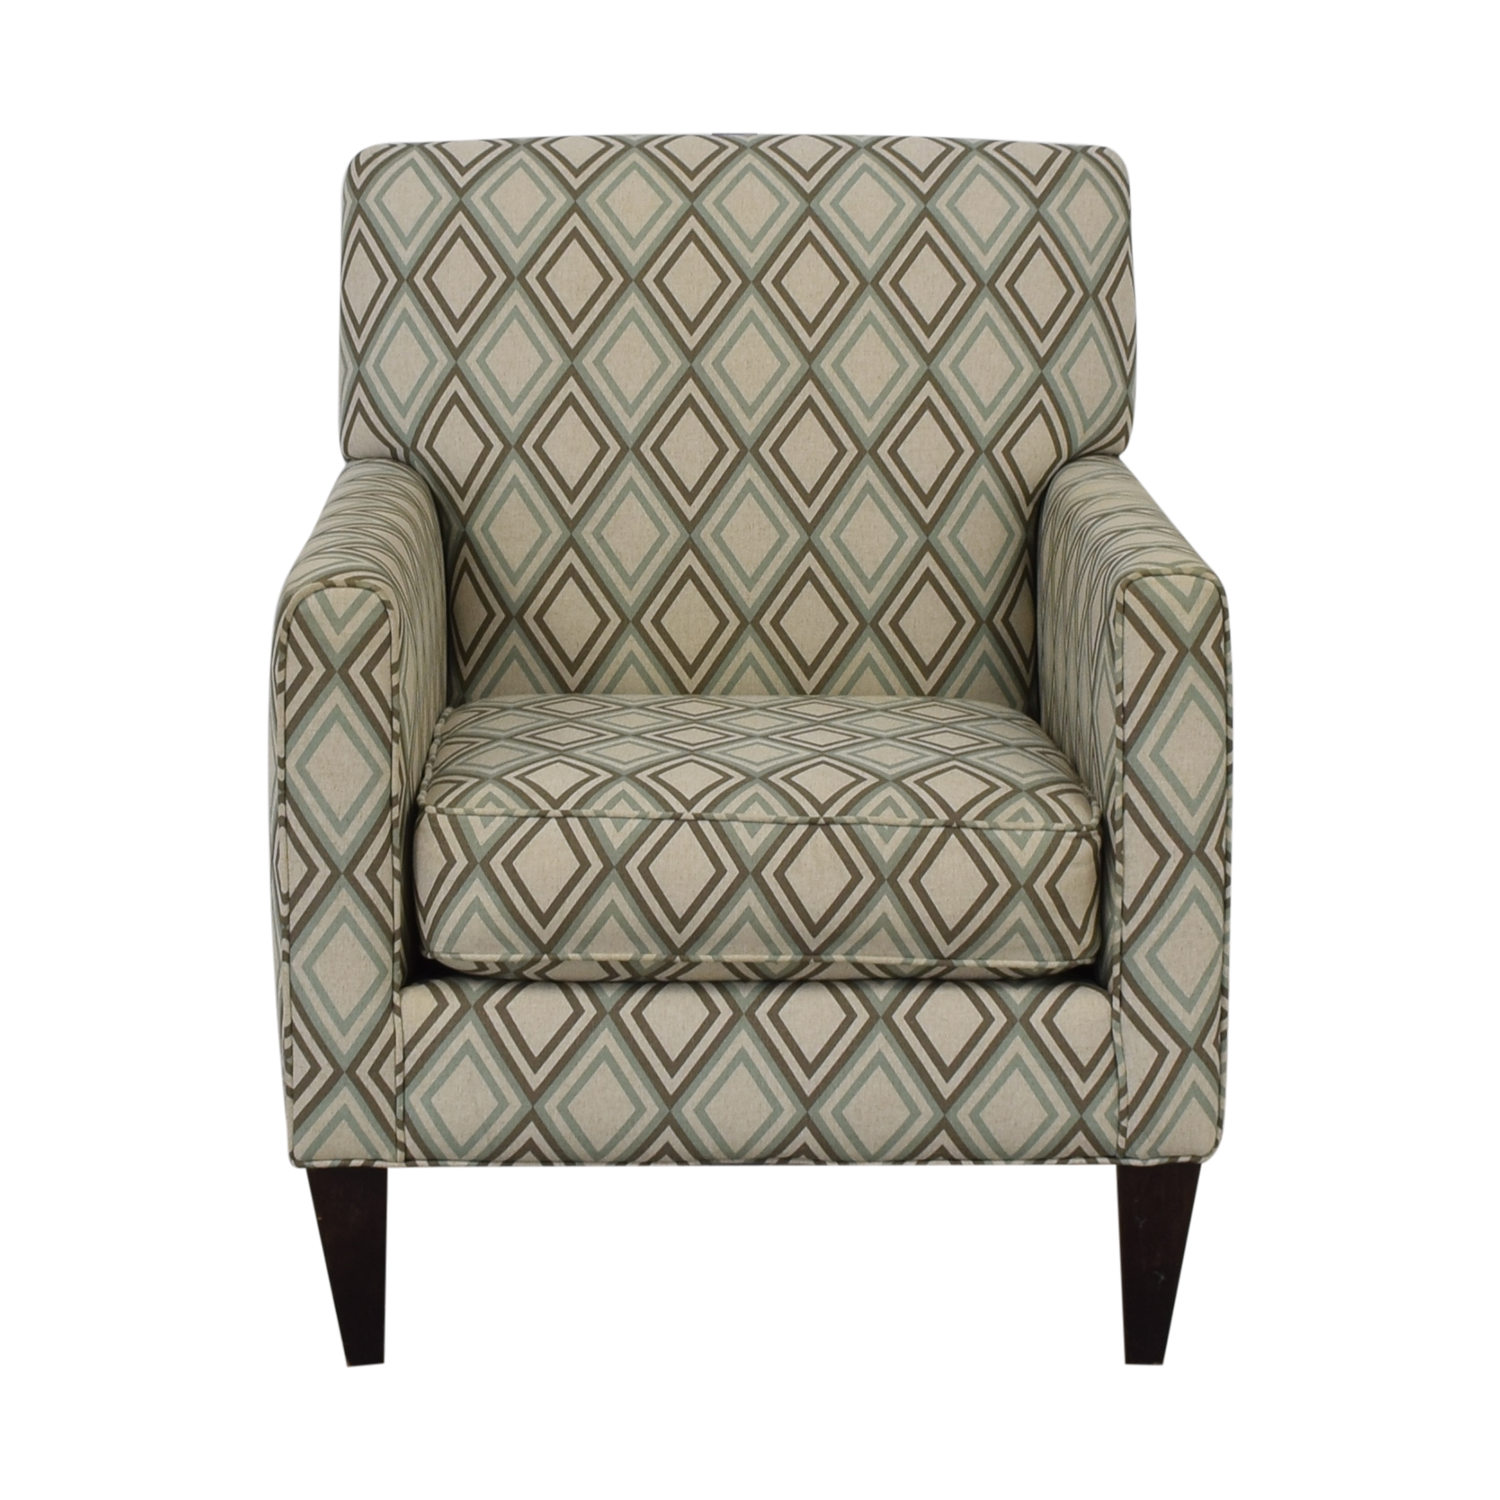 Rowe Furniture Patterned Geometric Armchair sale